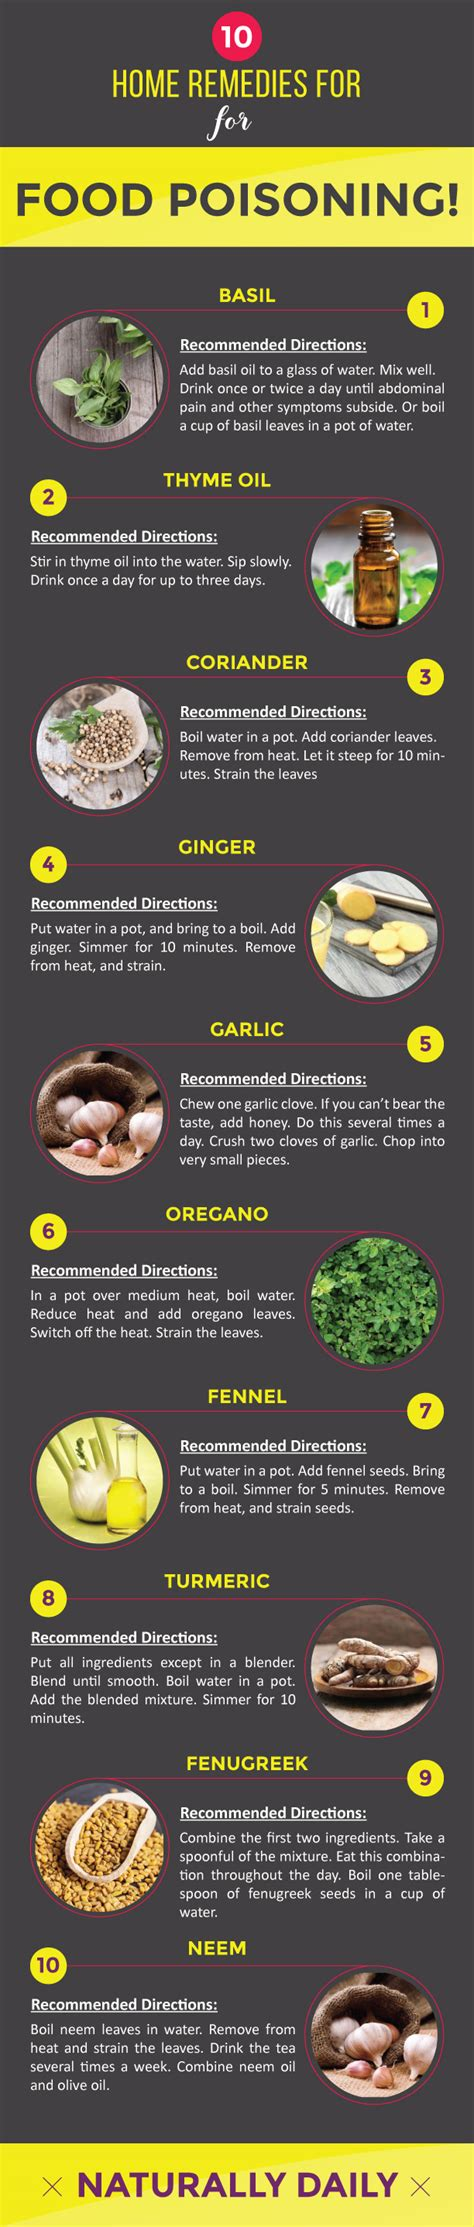 10 home remedies for food poisoning that work how to use